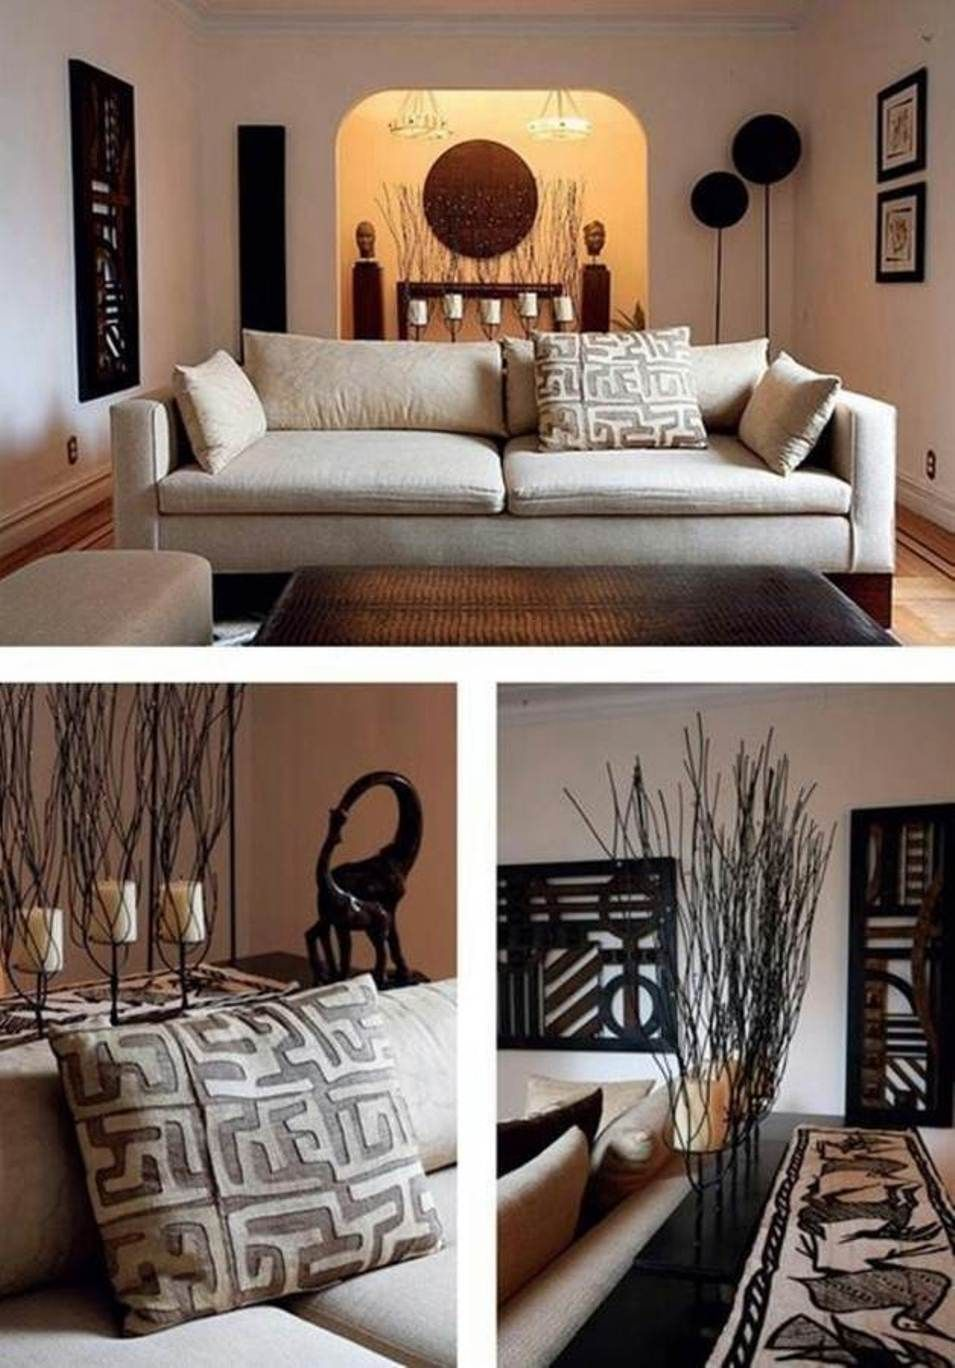 South african decorating ideas african tribal global for Living room decorating ideas pinterest